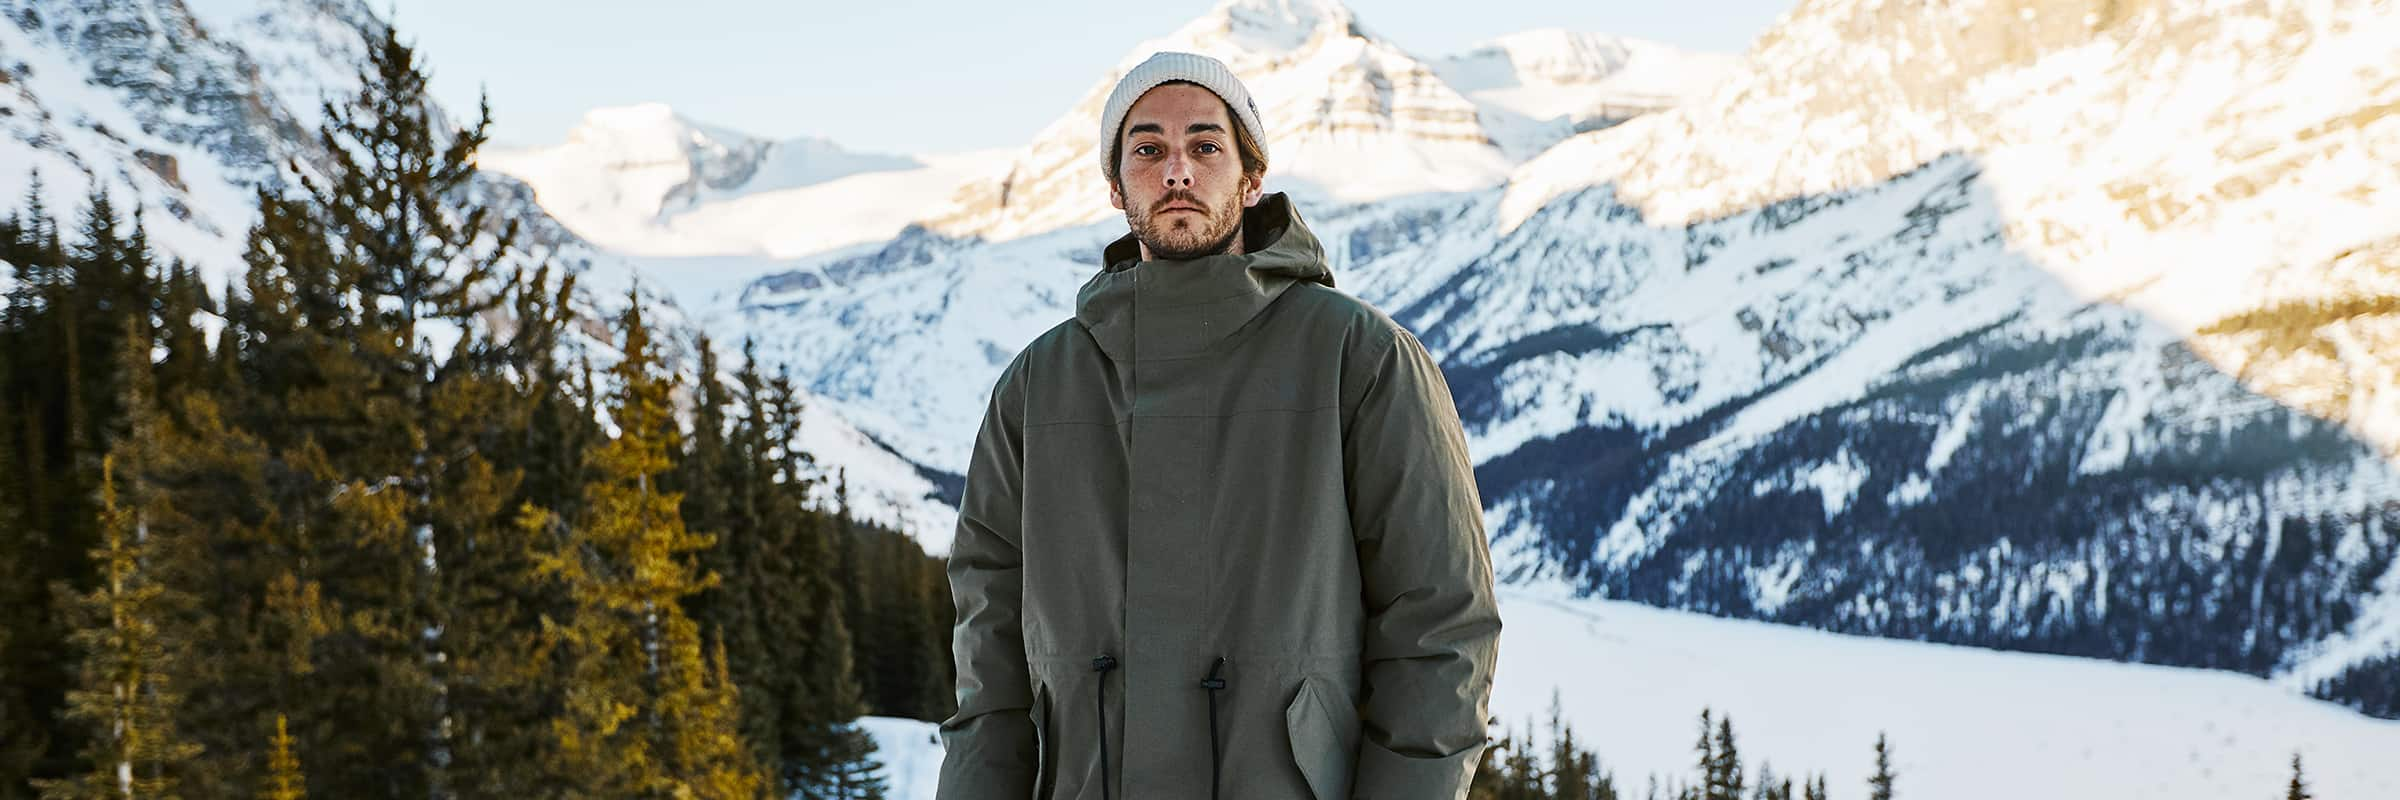 Ethically Made & Sustainable Winter Jackets